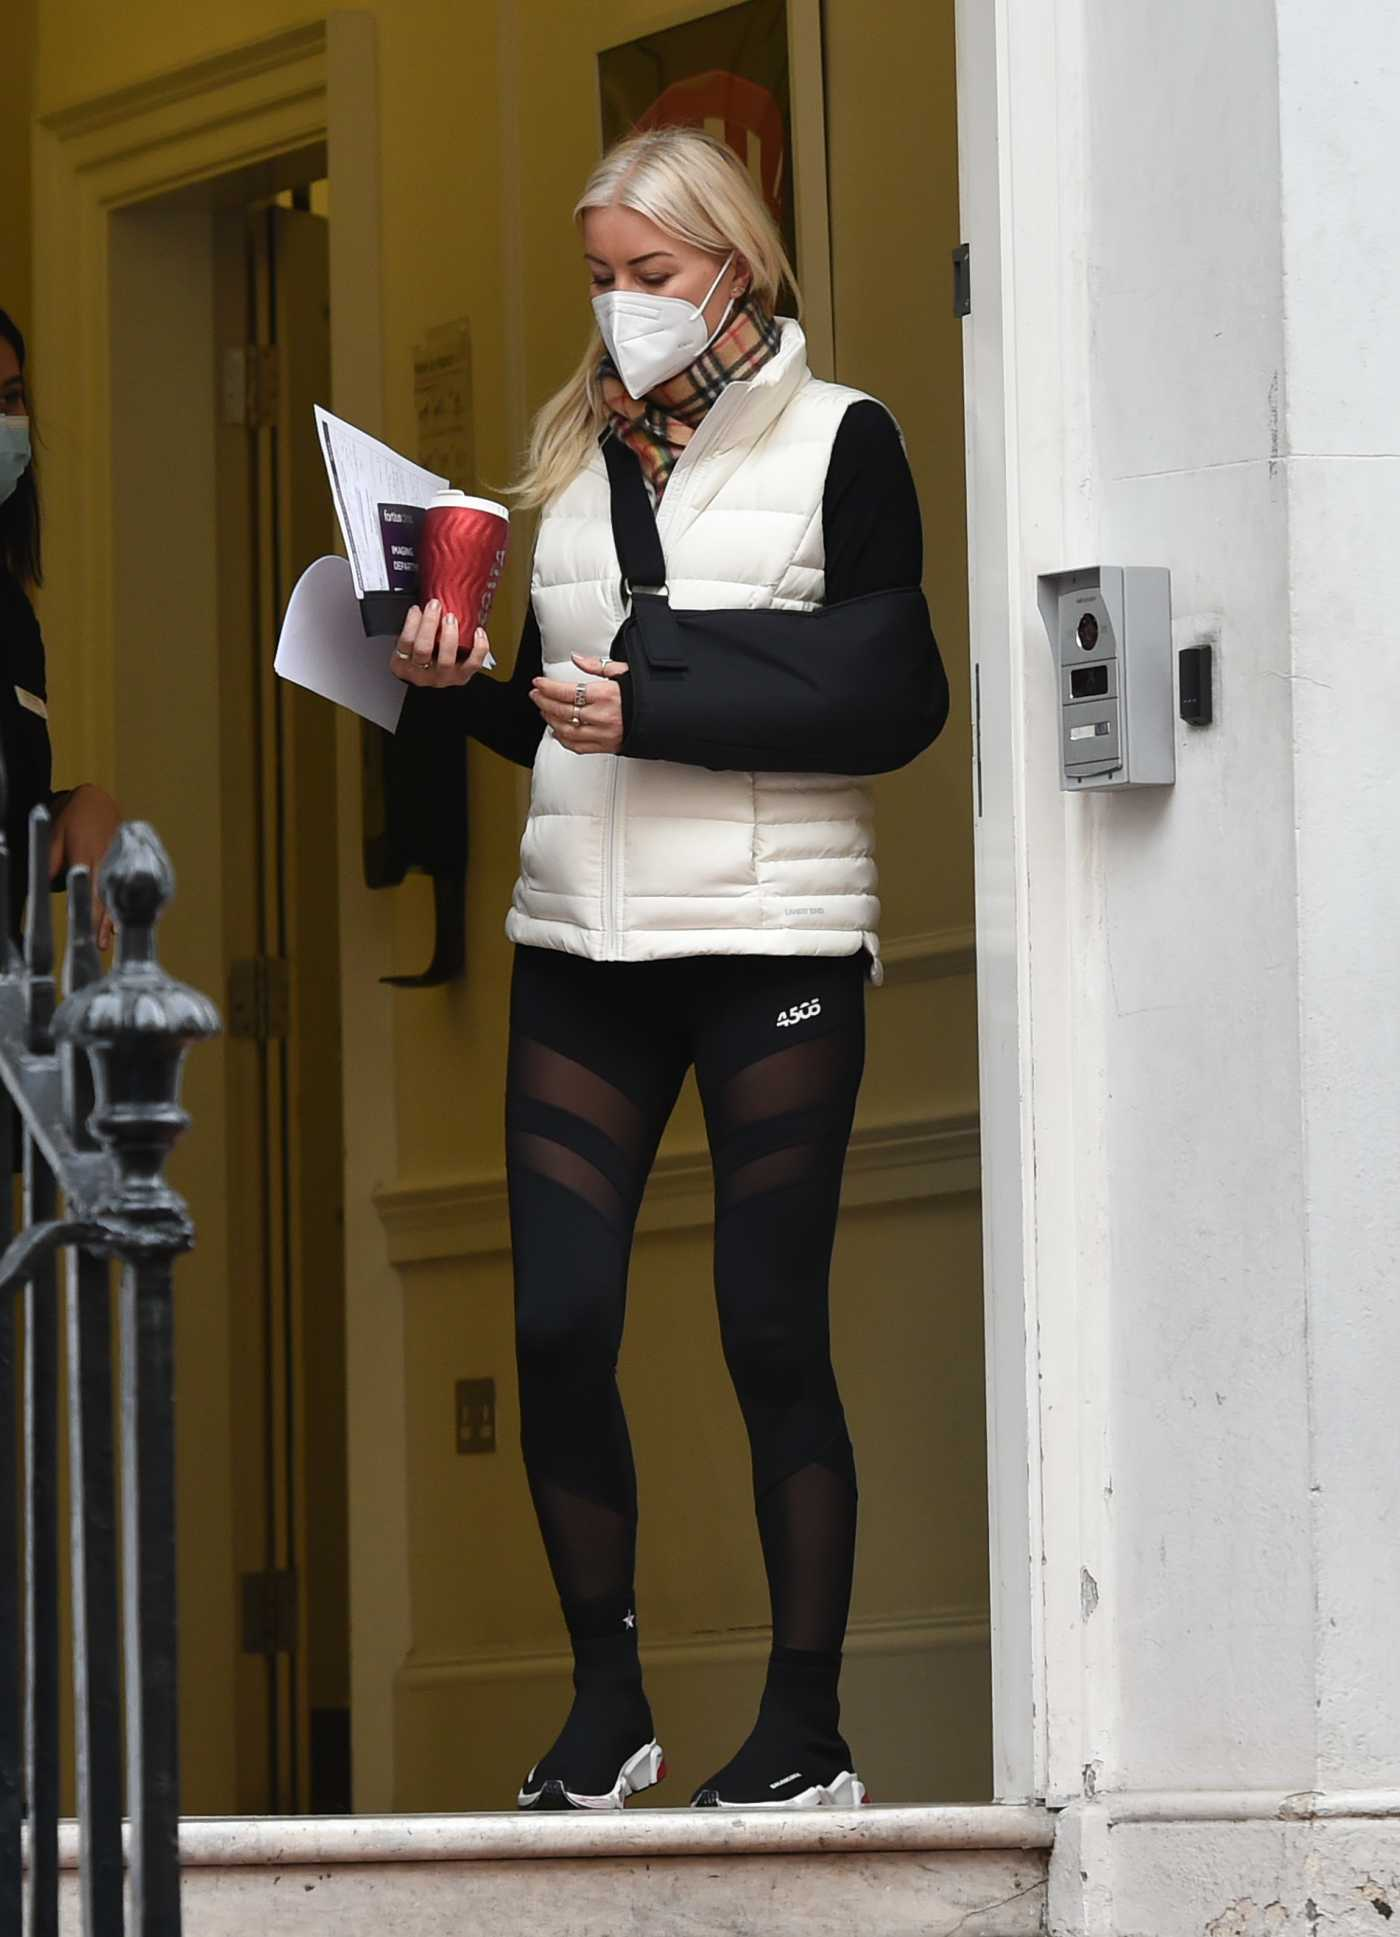 Denise Van Outen in a Black Leggings Leaves a Medical Clinic in London 01/19/2021